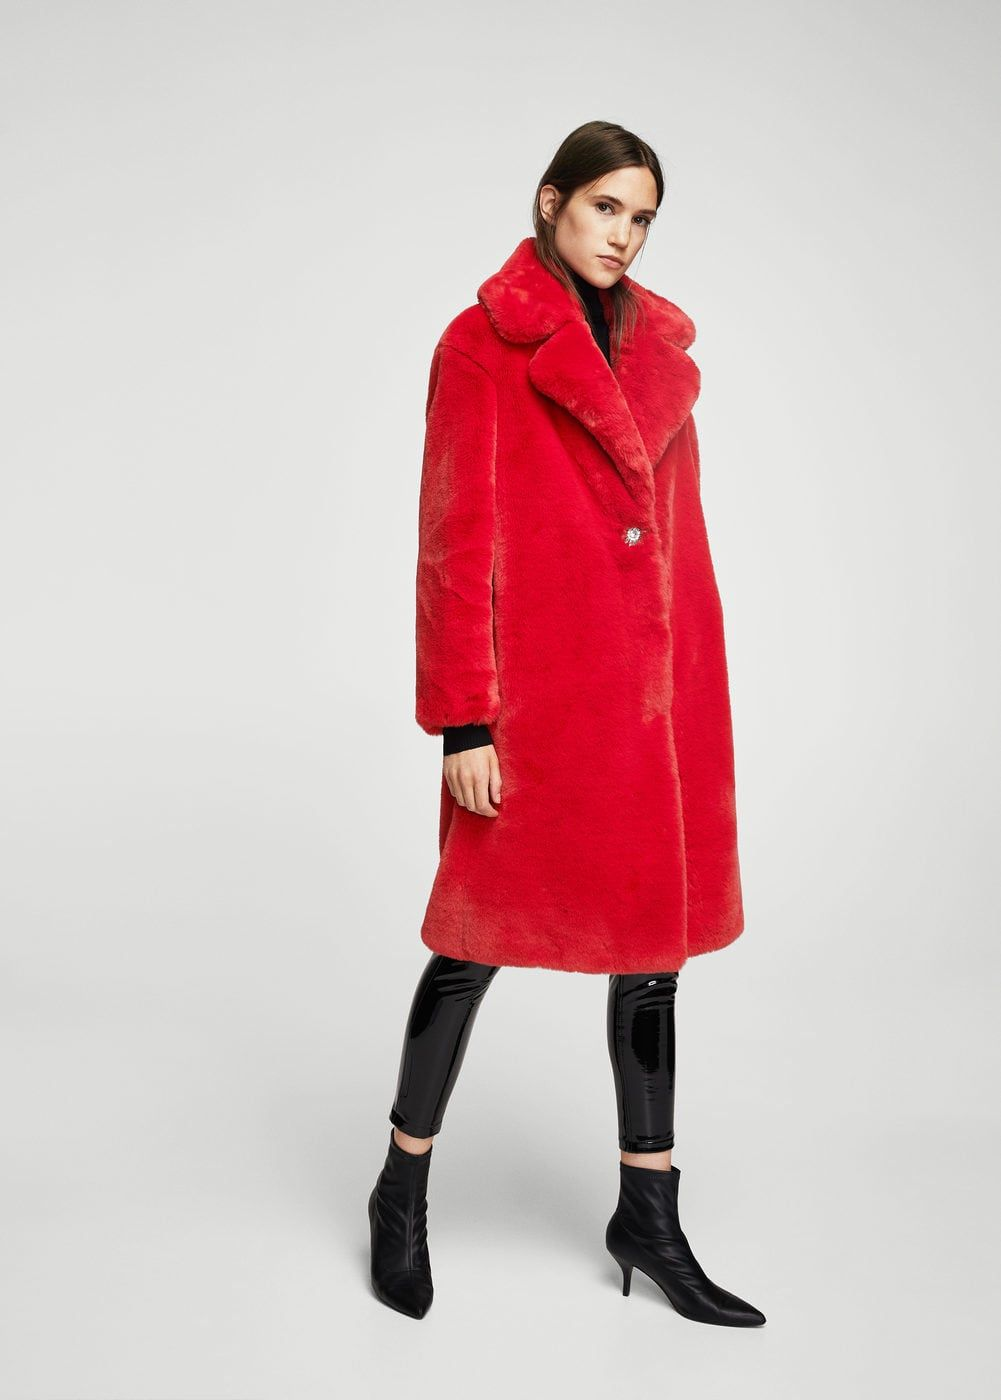 Шуба с лацканами   MANGO МАНГО Red Fashion, Colorful Fashion, Autumn  Fashion, Red 85e1edad85bb